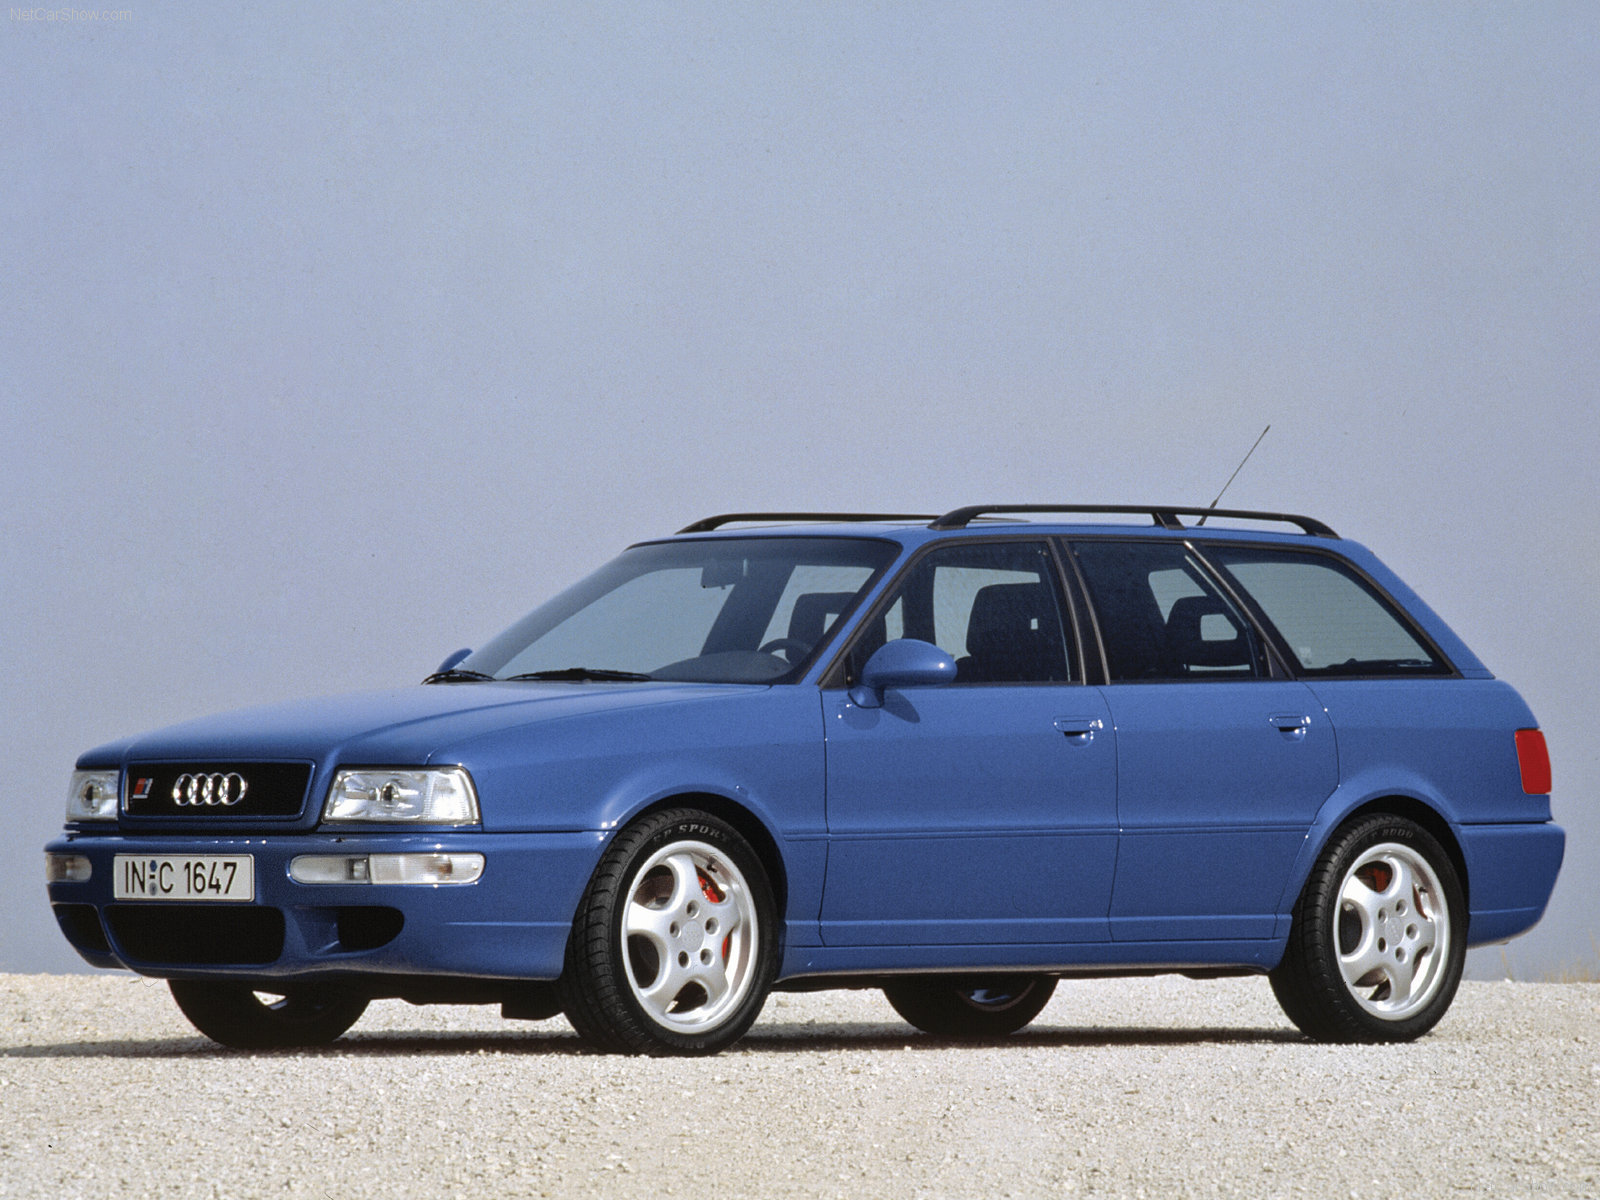 Best Wallpapers Audi Rs2 Avant Wallpapers